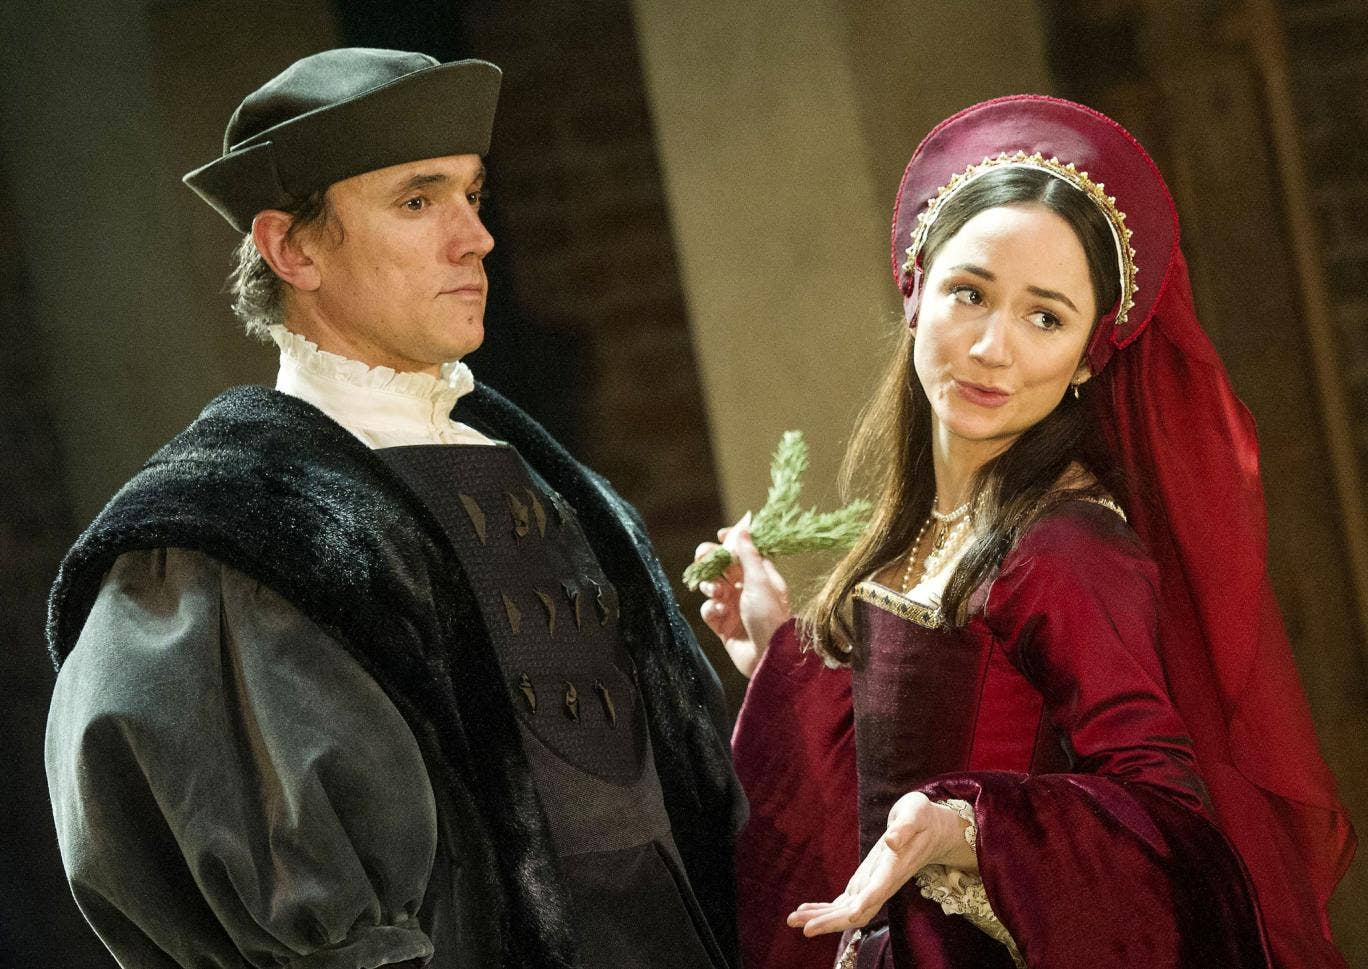 Ben Miles as Thomas Cromwell and Lydia Leonard as Anne Boleyn in Wolf Hall